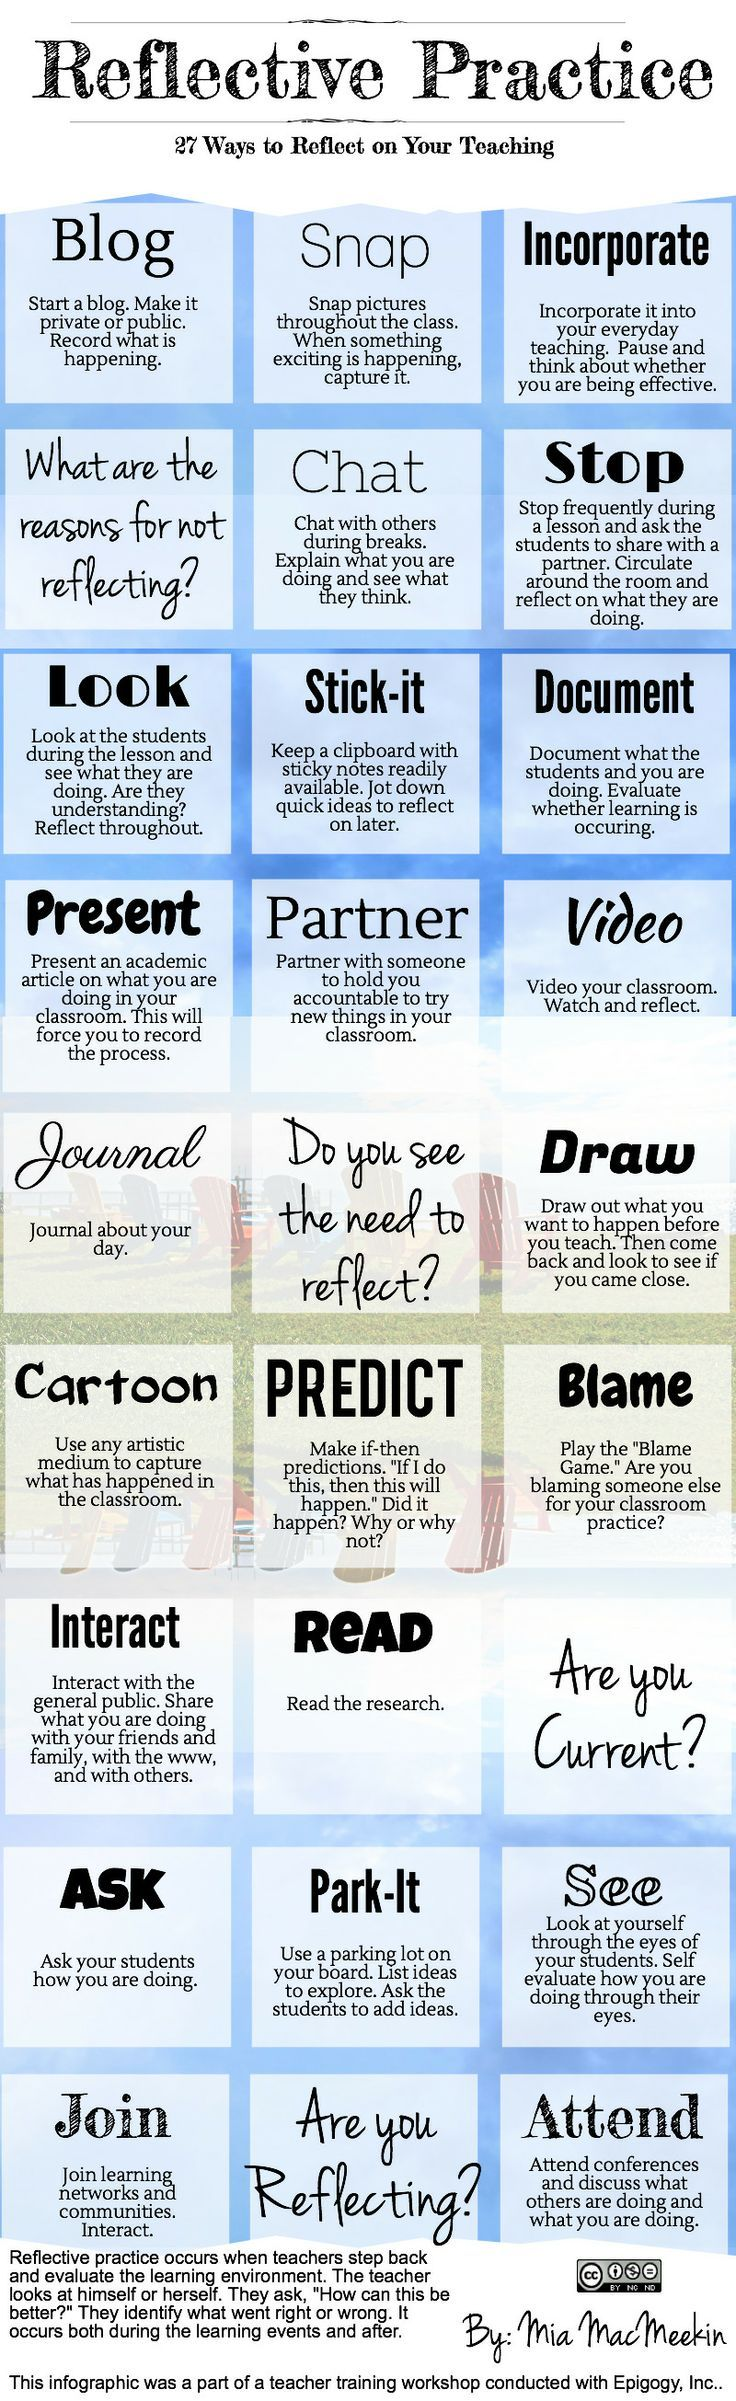 27 Reflection Strategies to Improve Your Teaching